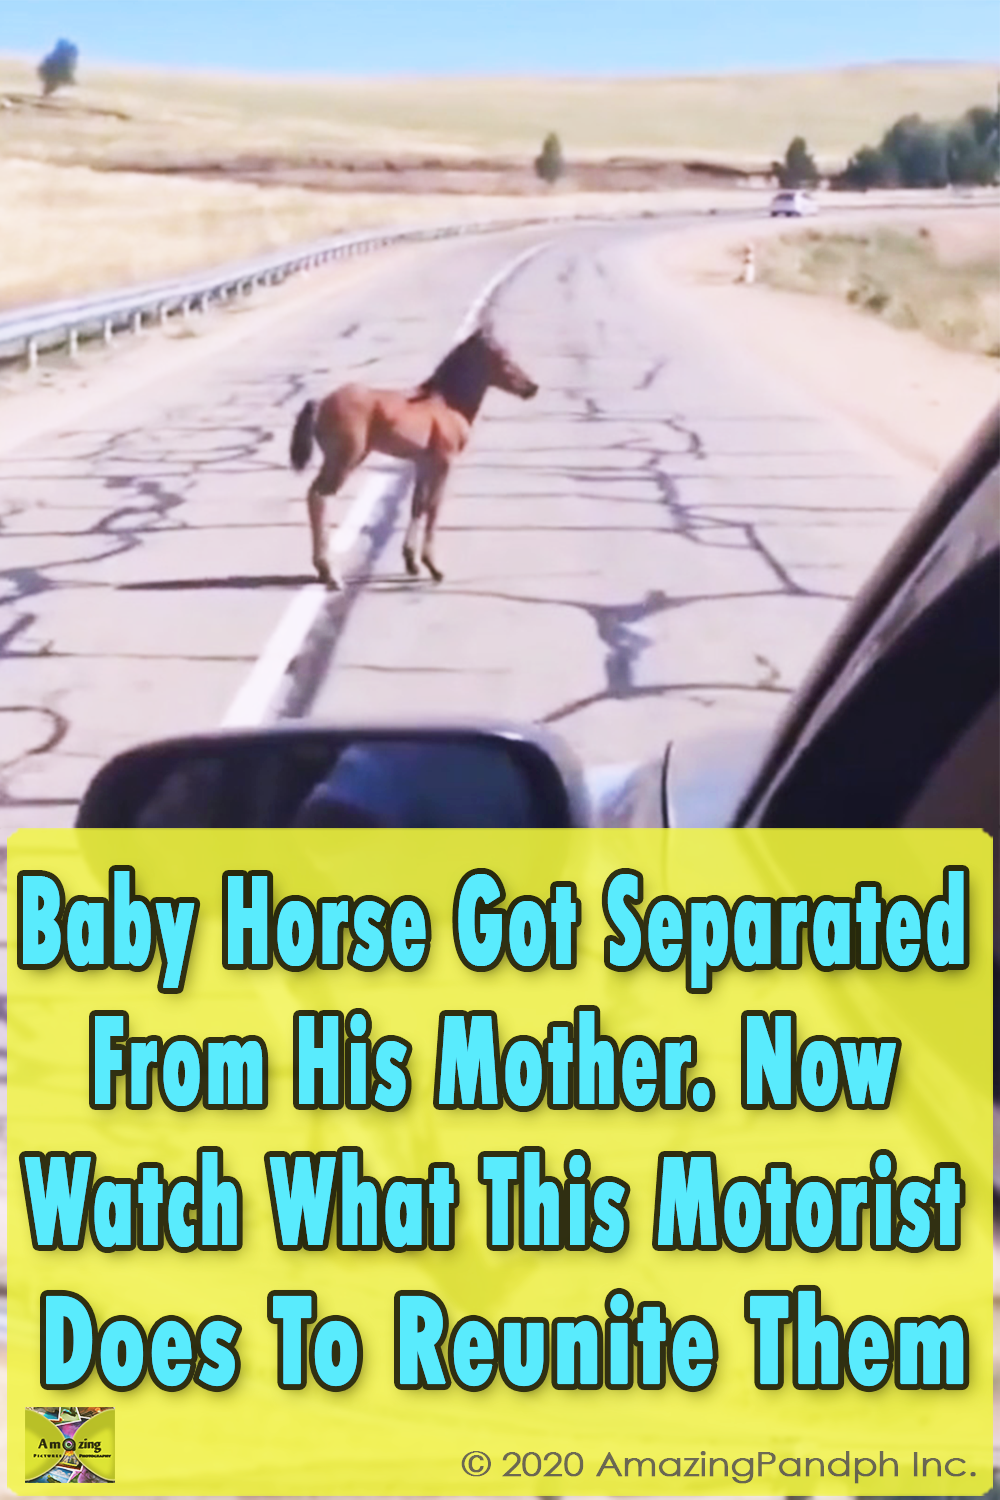 Baby Horse, Separated, Mother, Horse, Baby, reunion, Cars, Road, Lost,